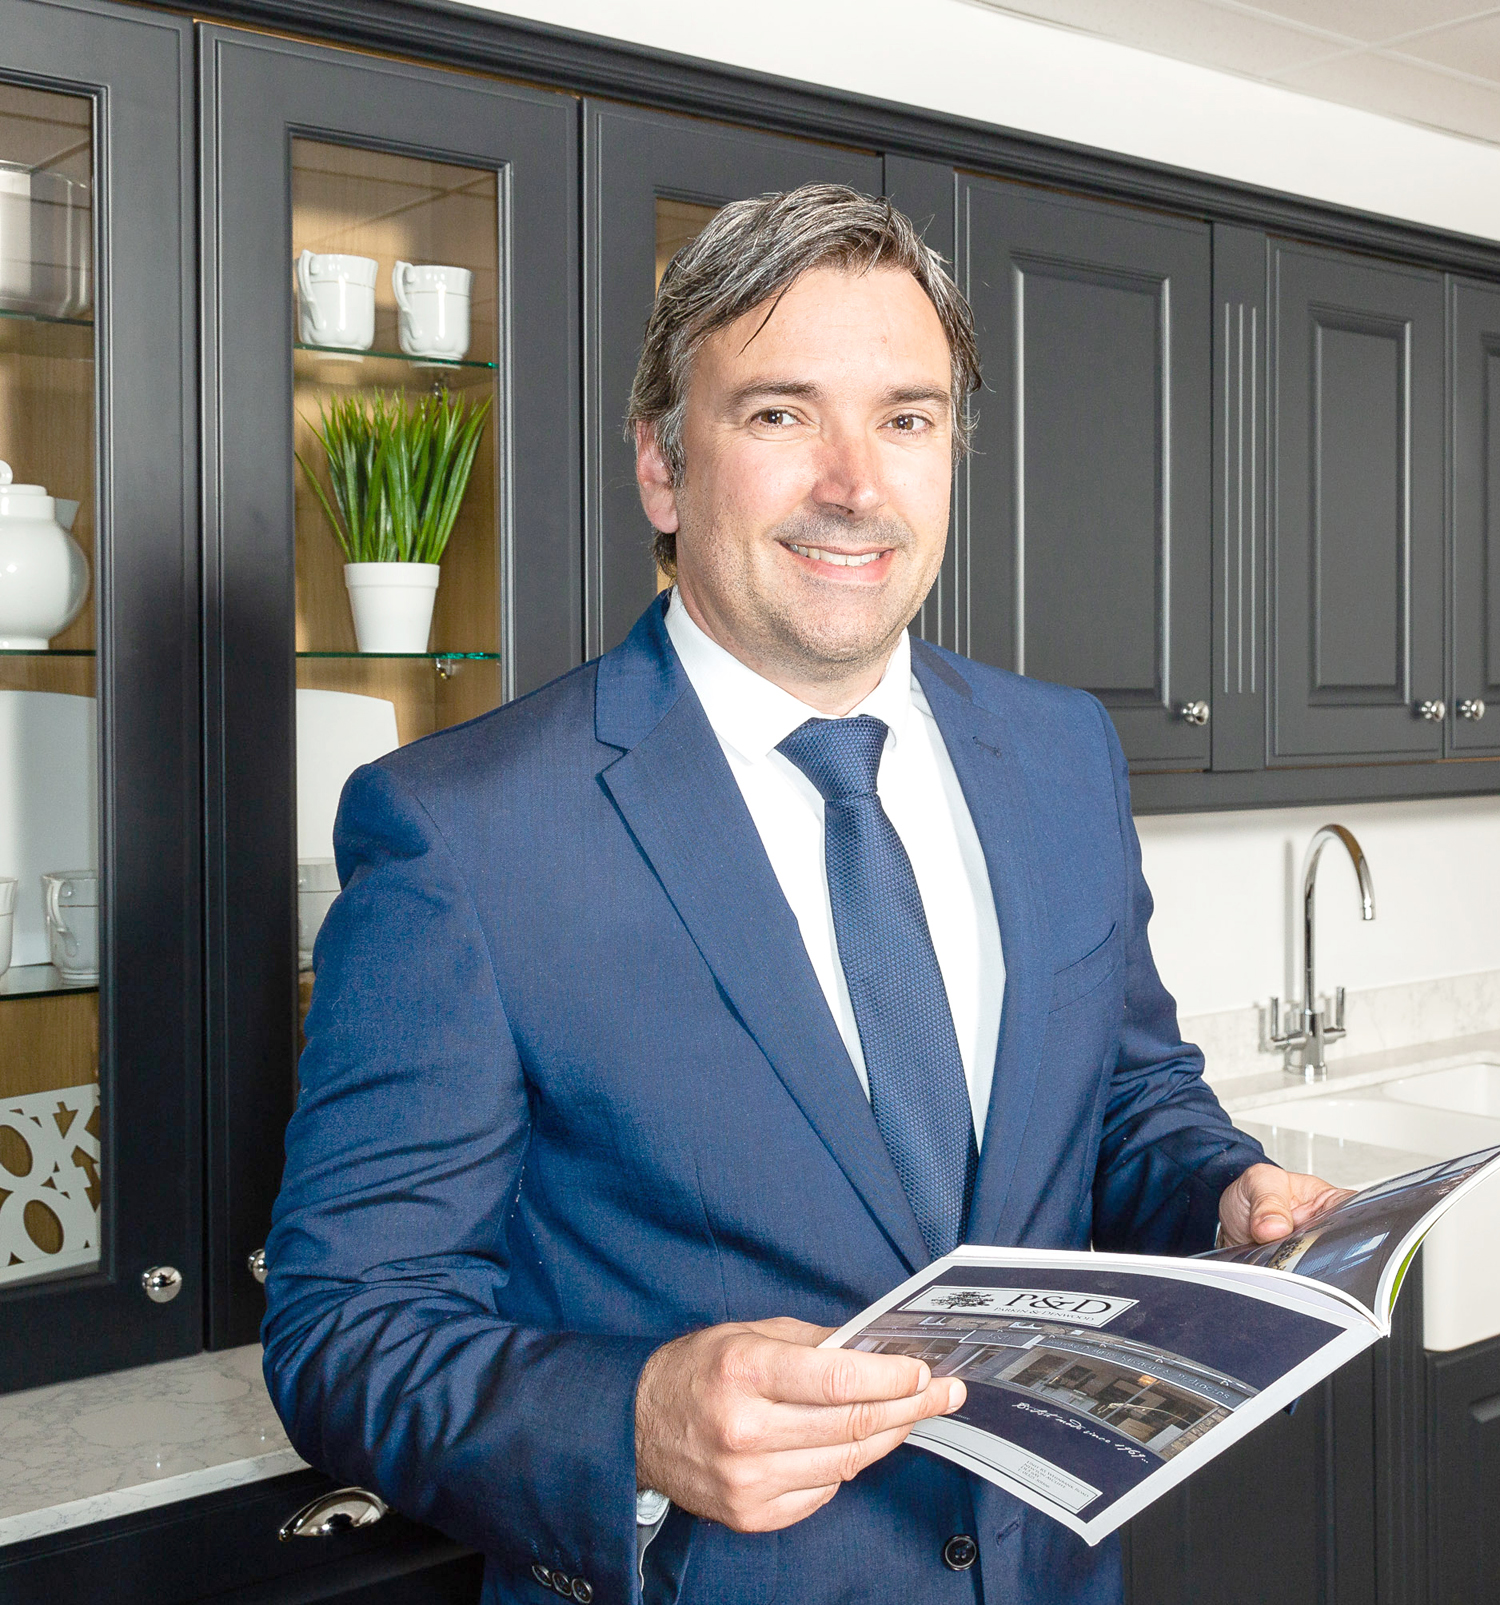 Kitchen and Bedroom Company Opens in Aycliffe